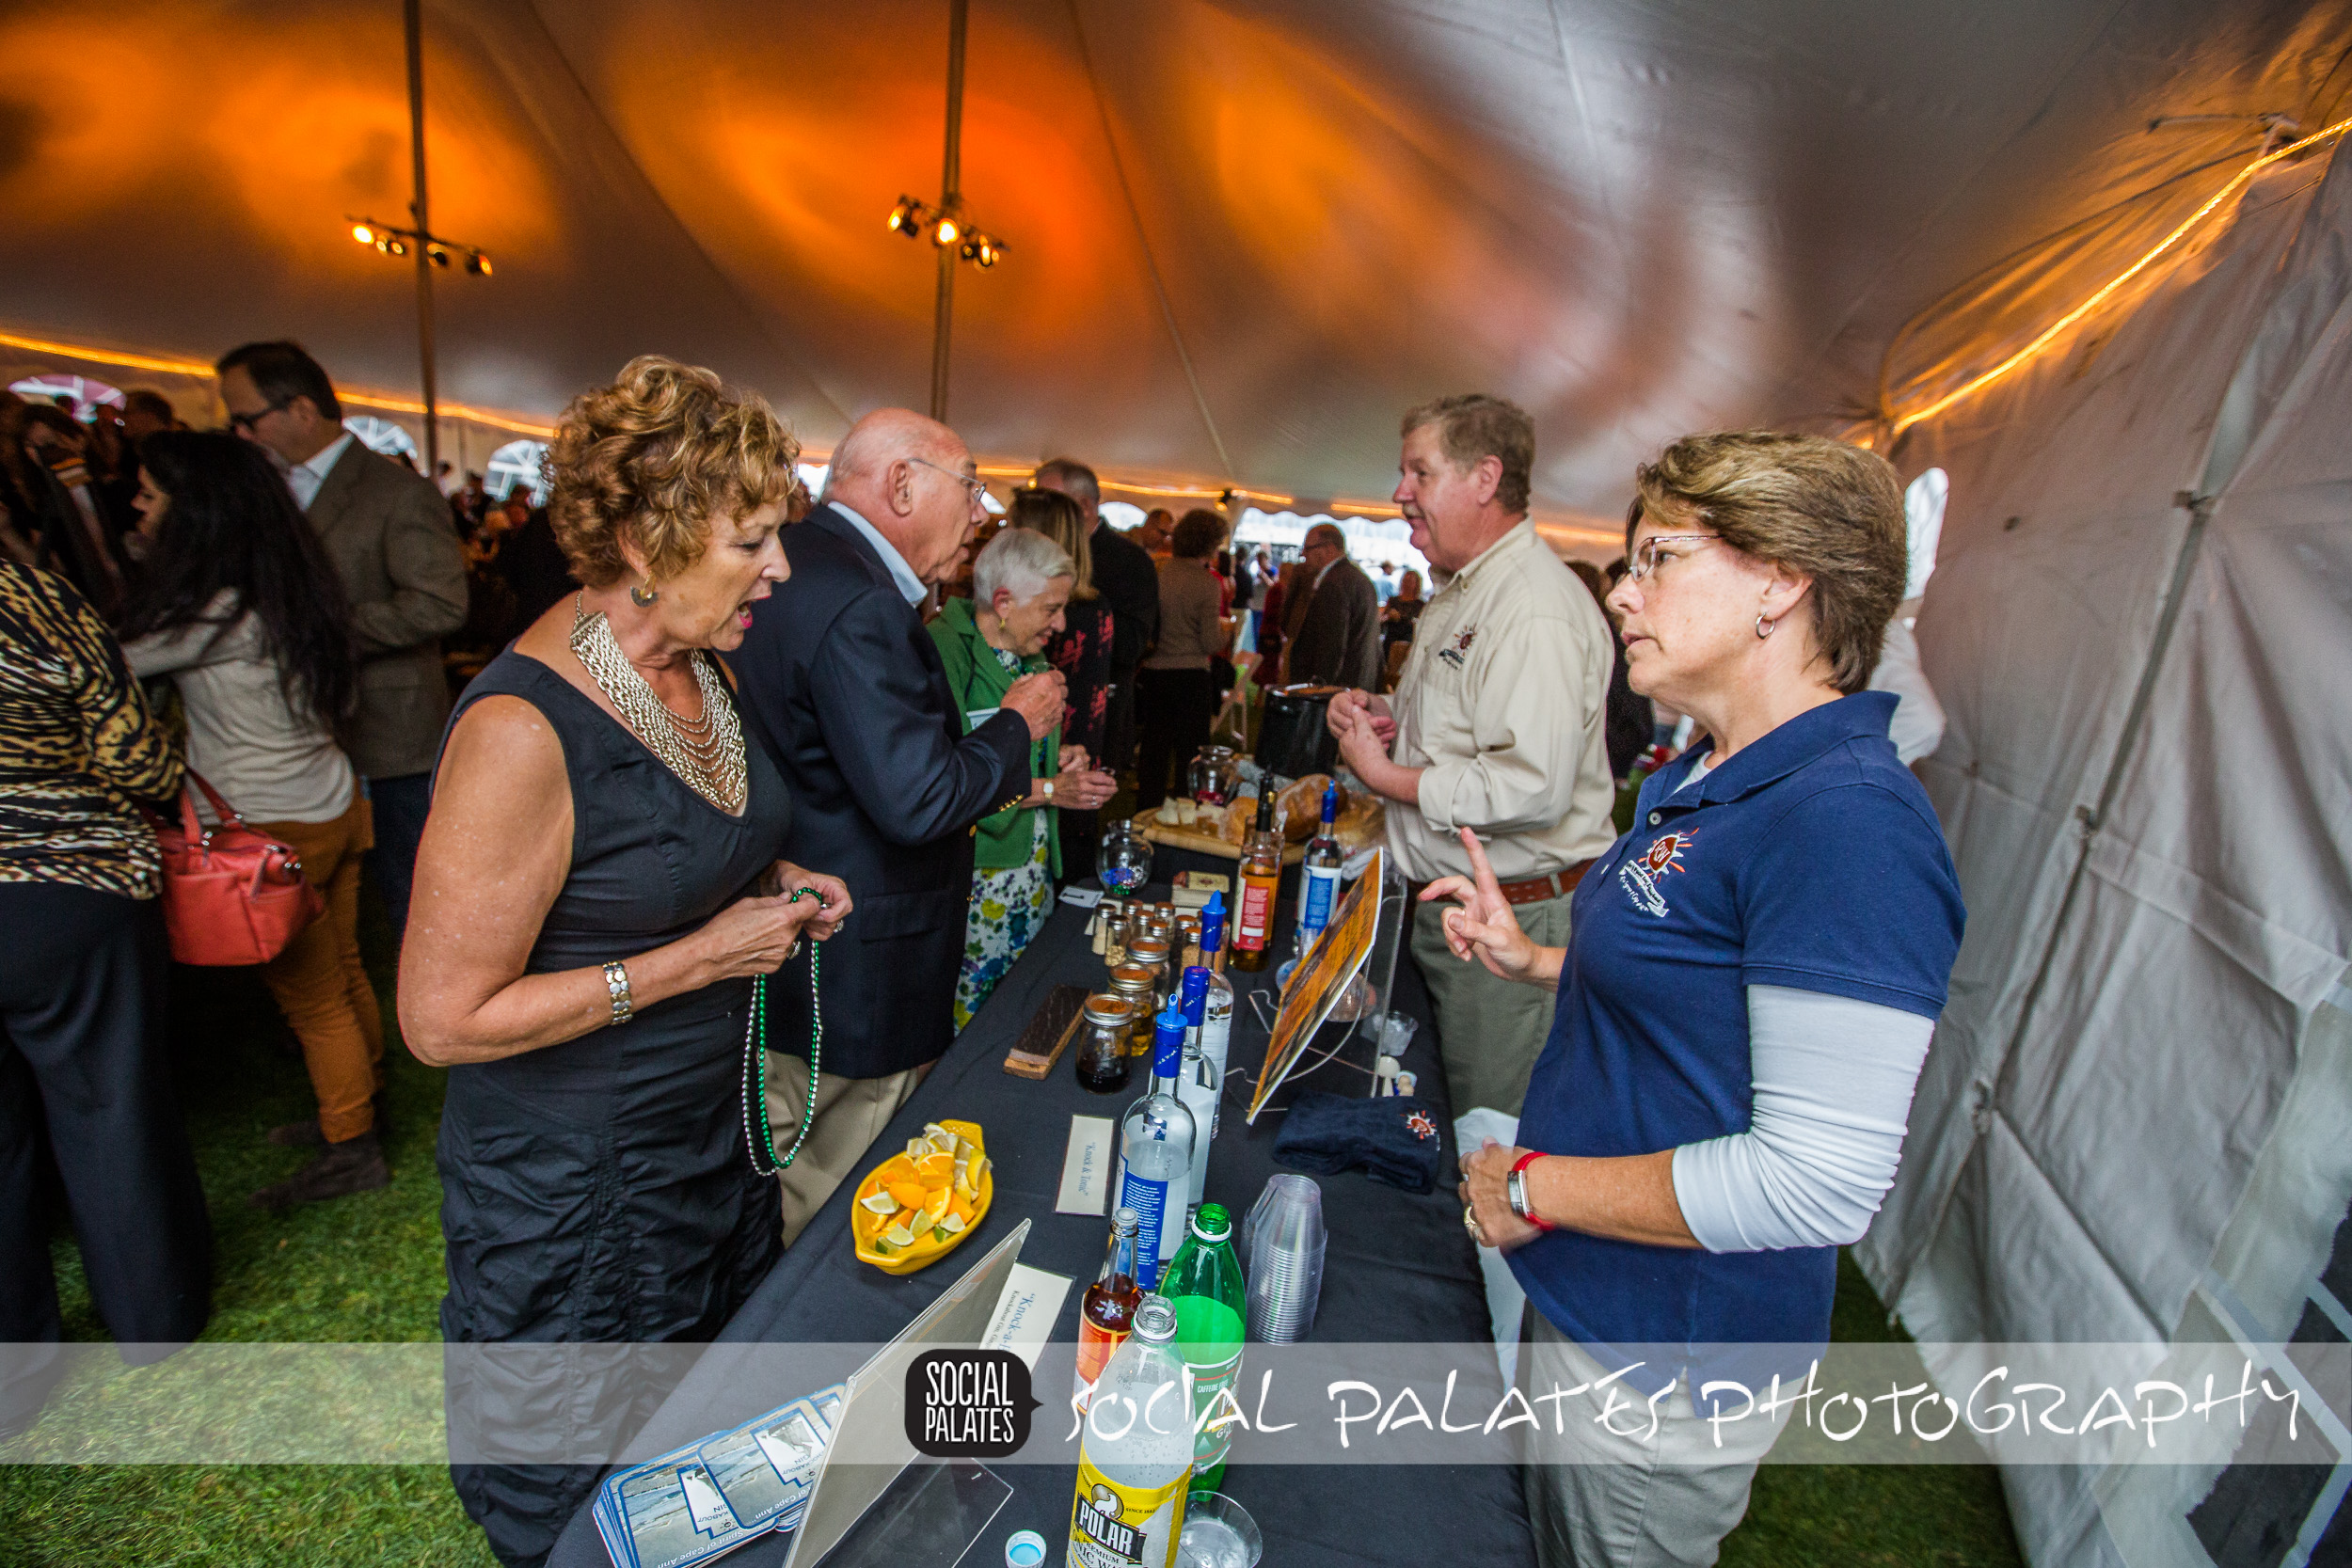 Taste_of_the_gables_2014-4832.jpg